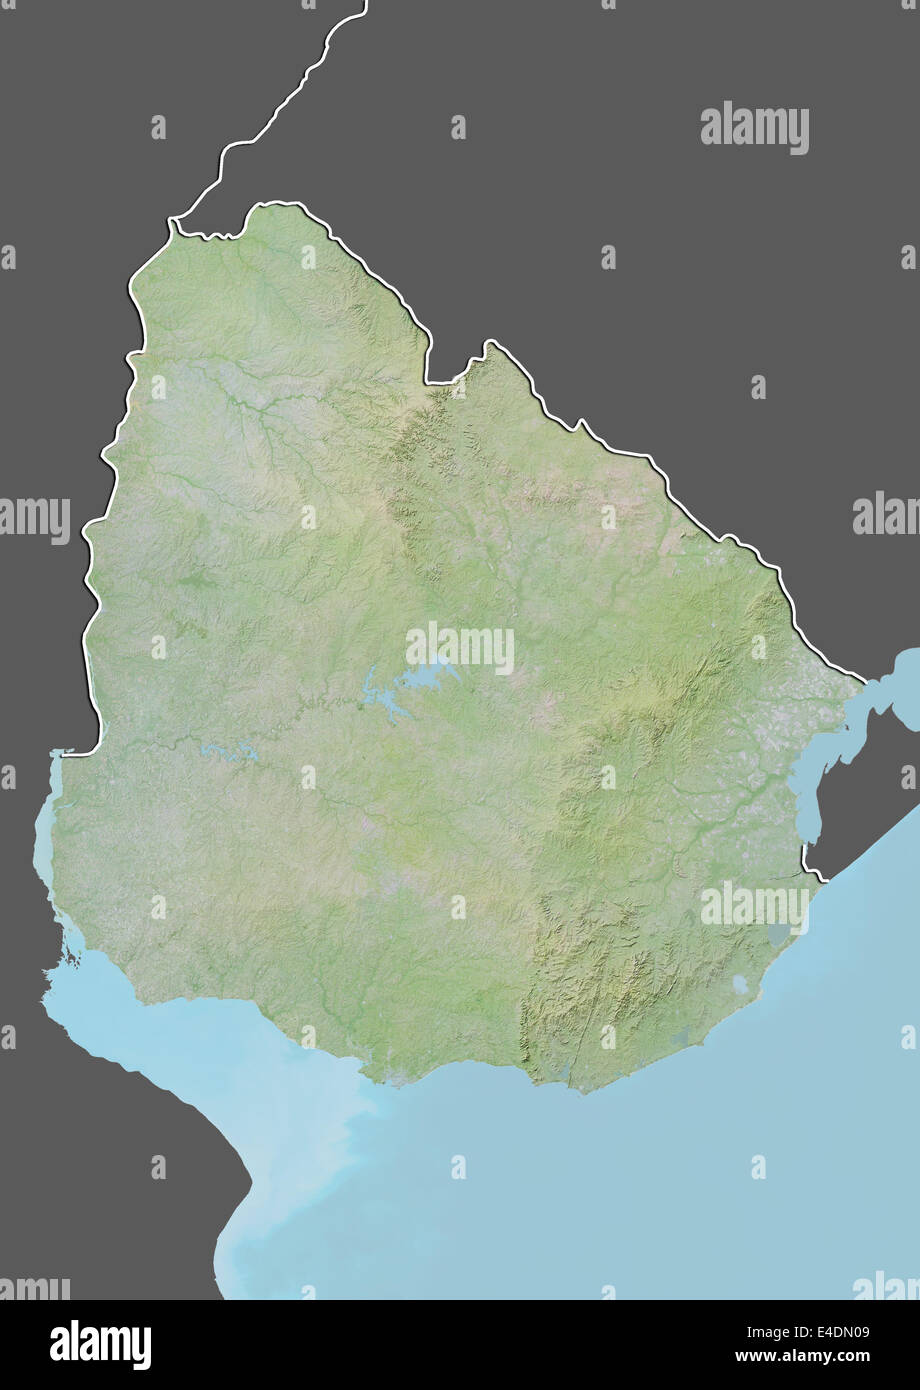 Uruguay Relief Map With Border And Mask Stock Photo Royalty Free - Uruguay relief map